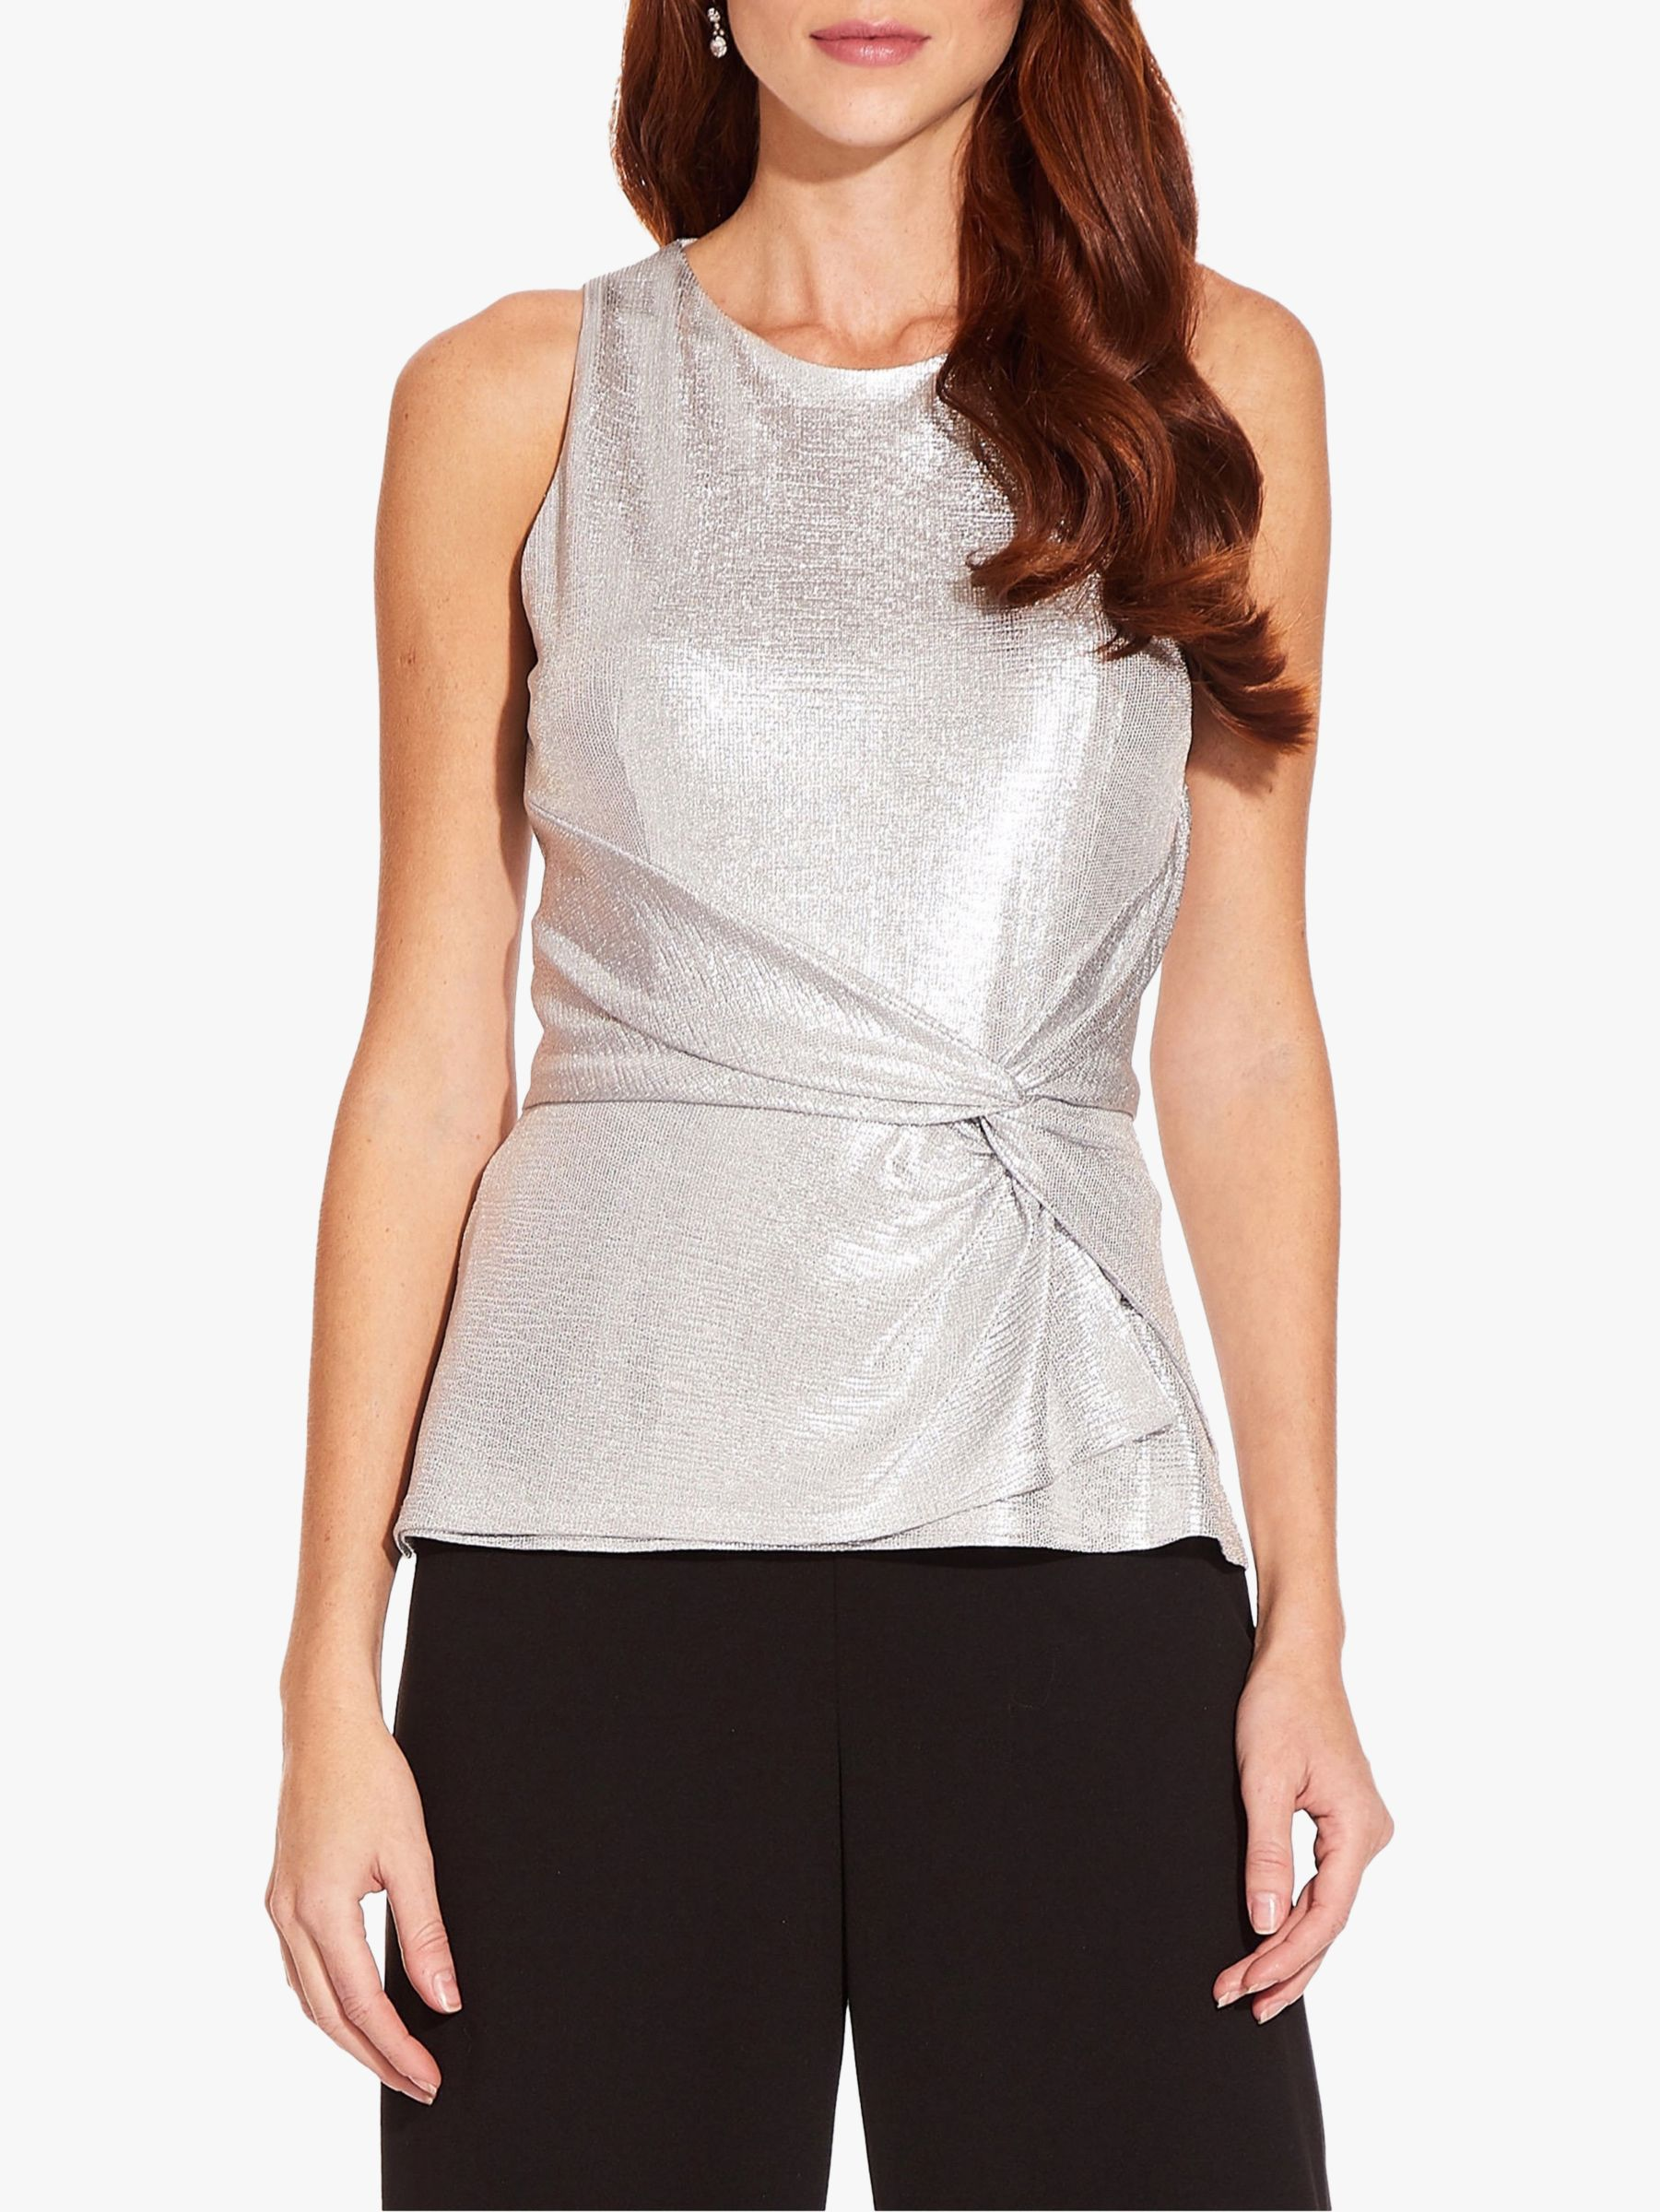 Adrianna Papell Adrianna Papell Foil Jersey Top, Silver